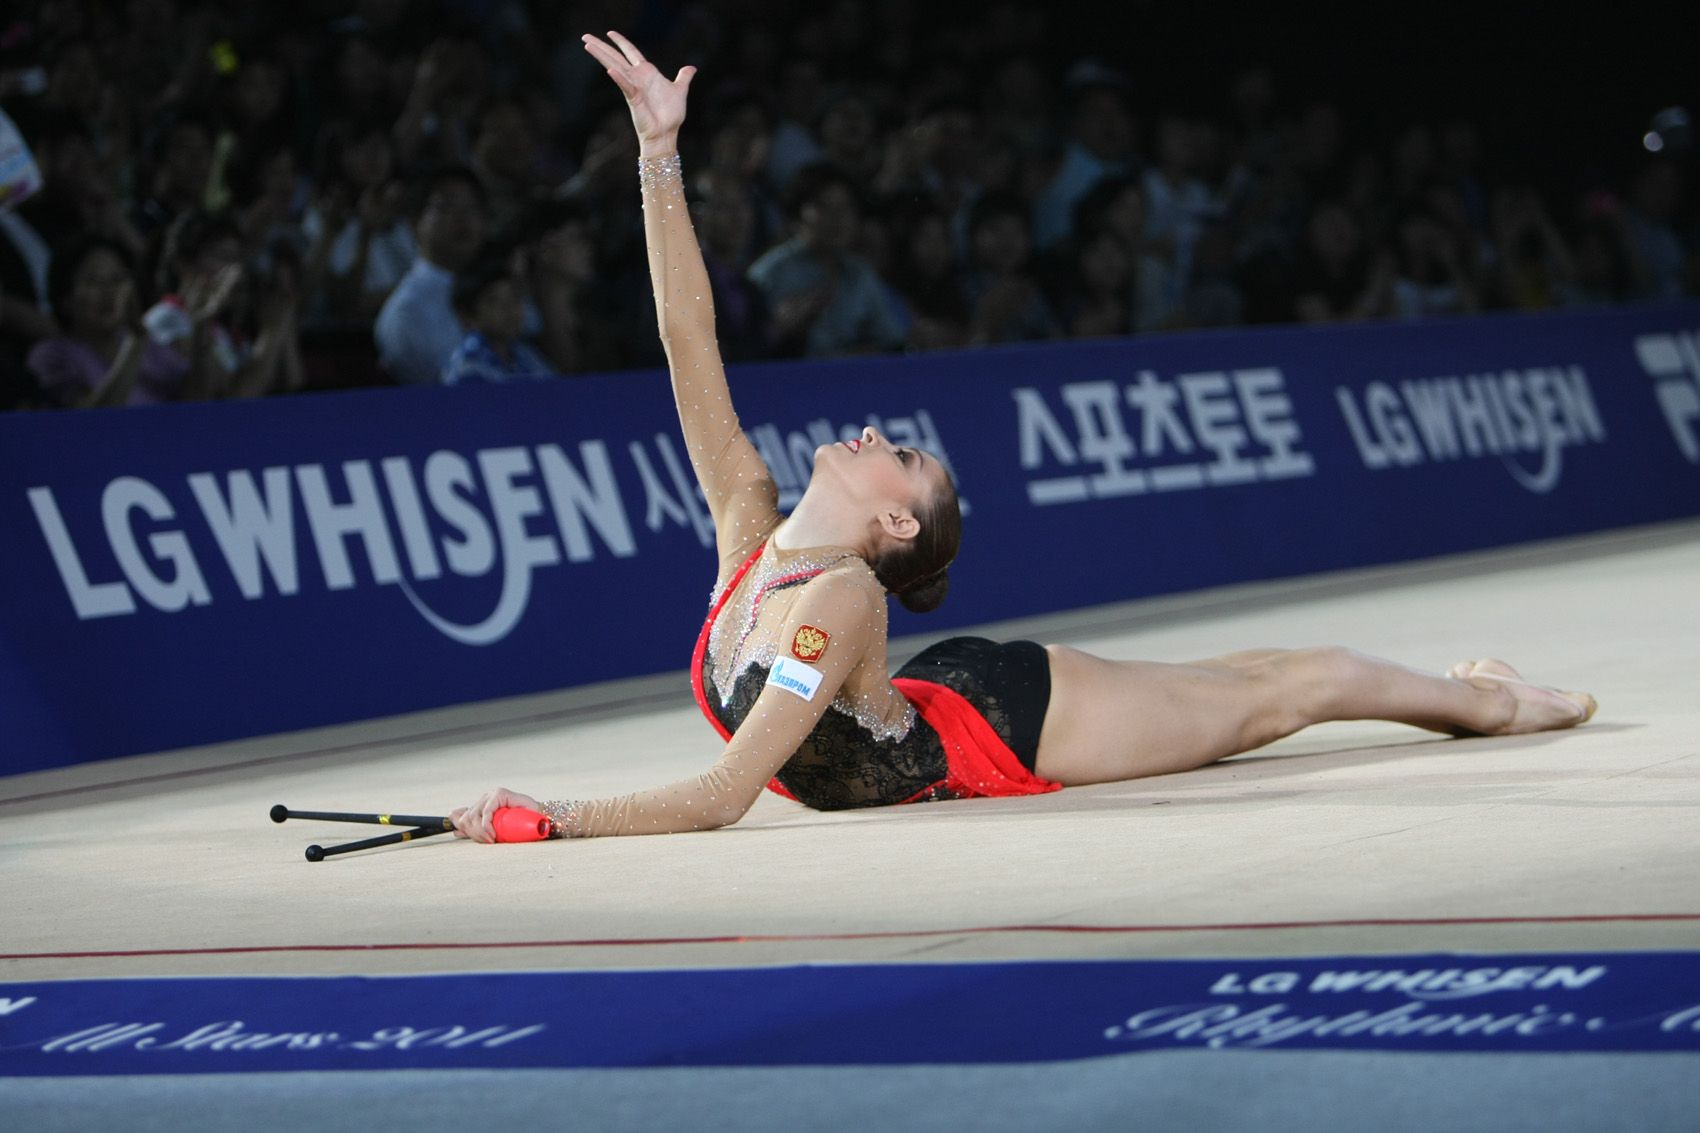 Son Yeon Jae | LG WHISEN Rhythmic All Stars 2011 | #rhythmic #gymnastics